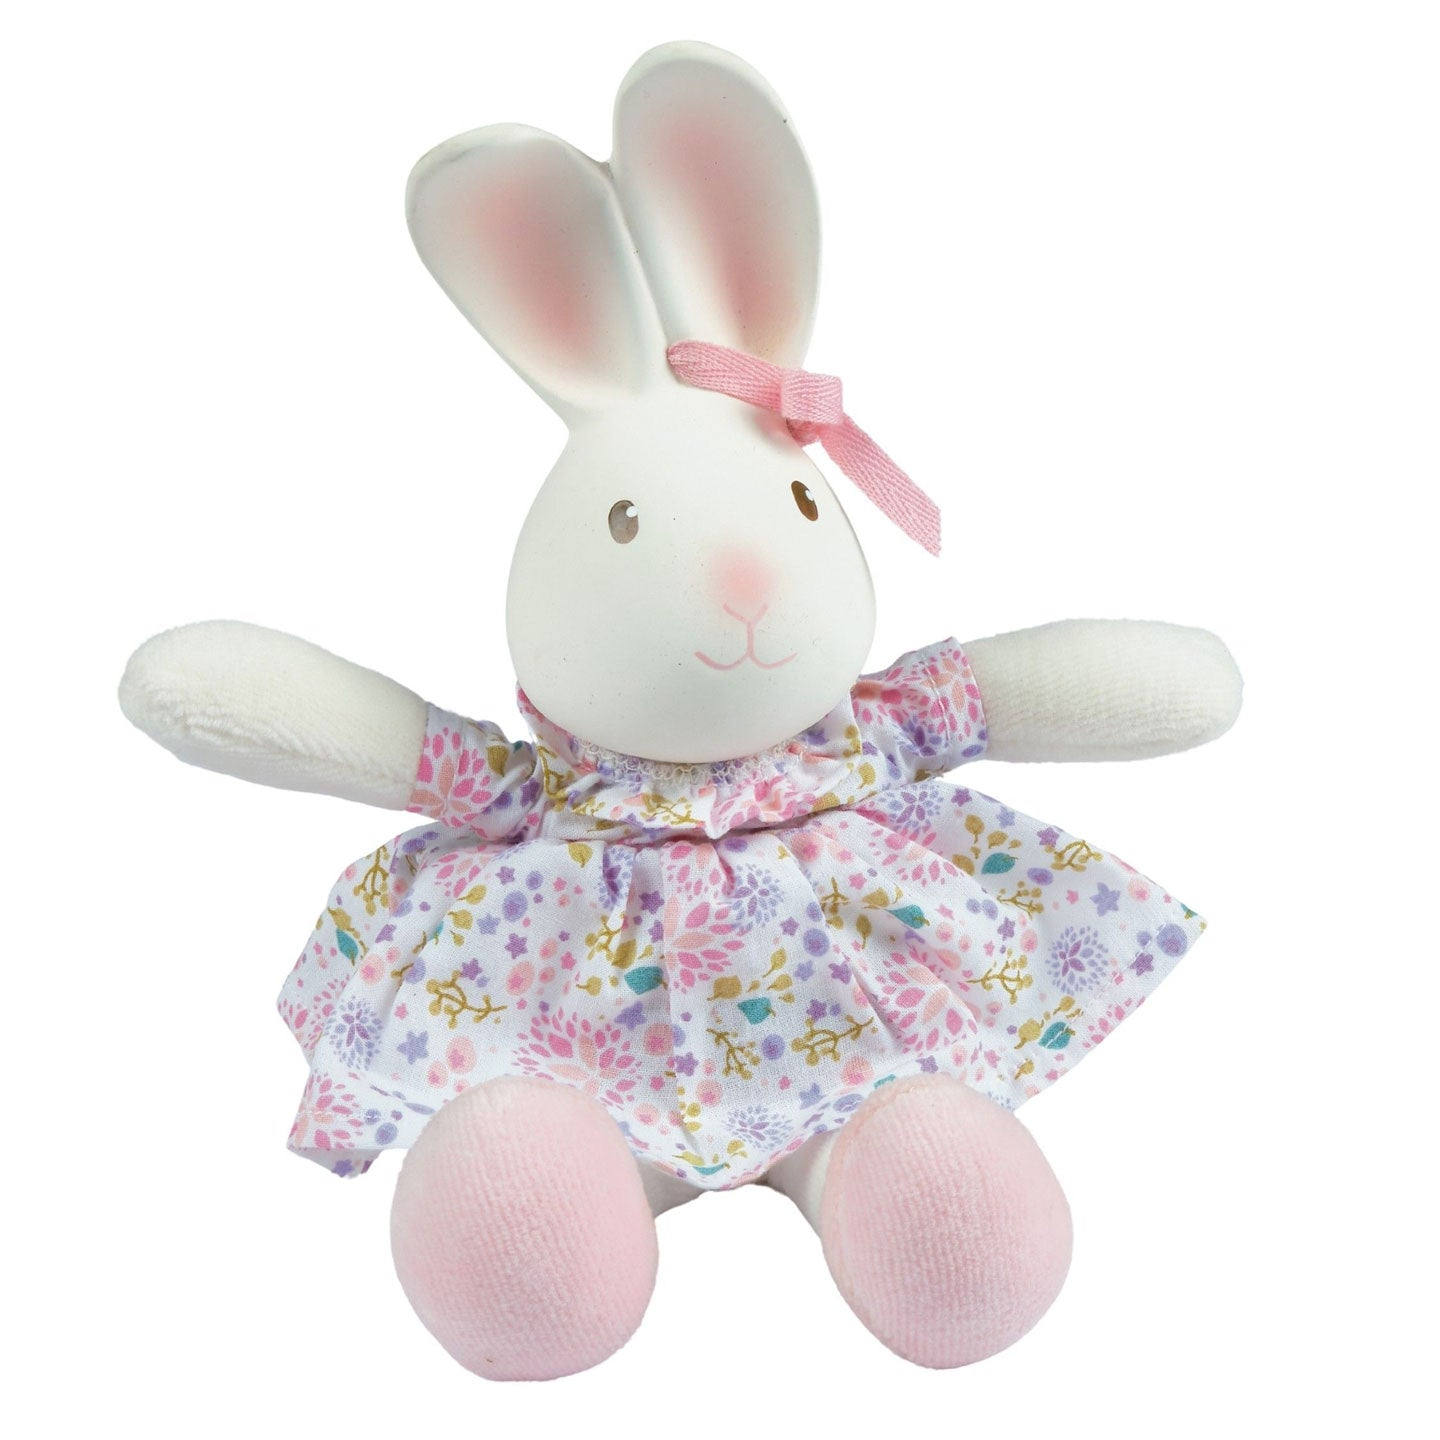 Havah the Bunny -  Rubber head Plush Toy